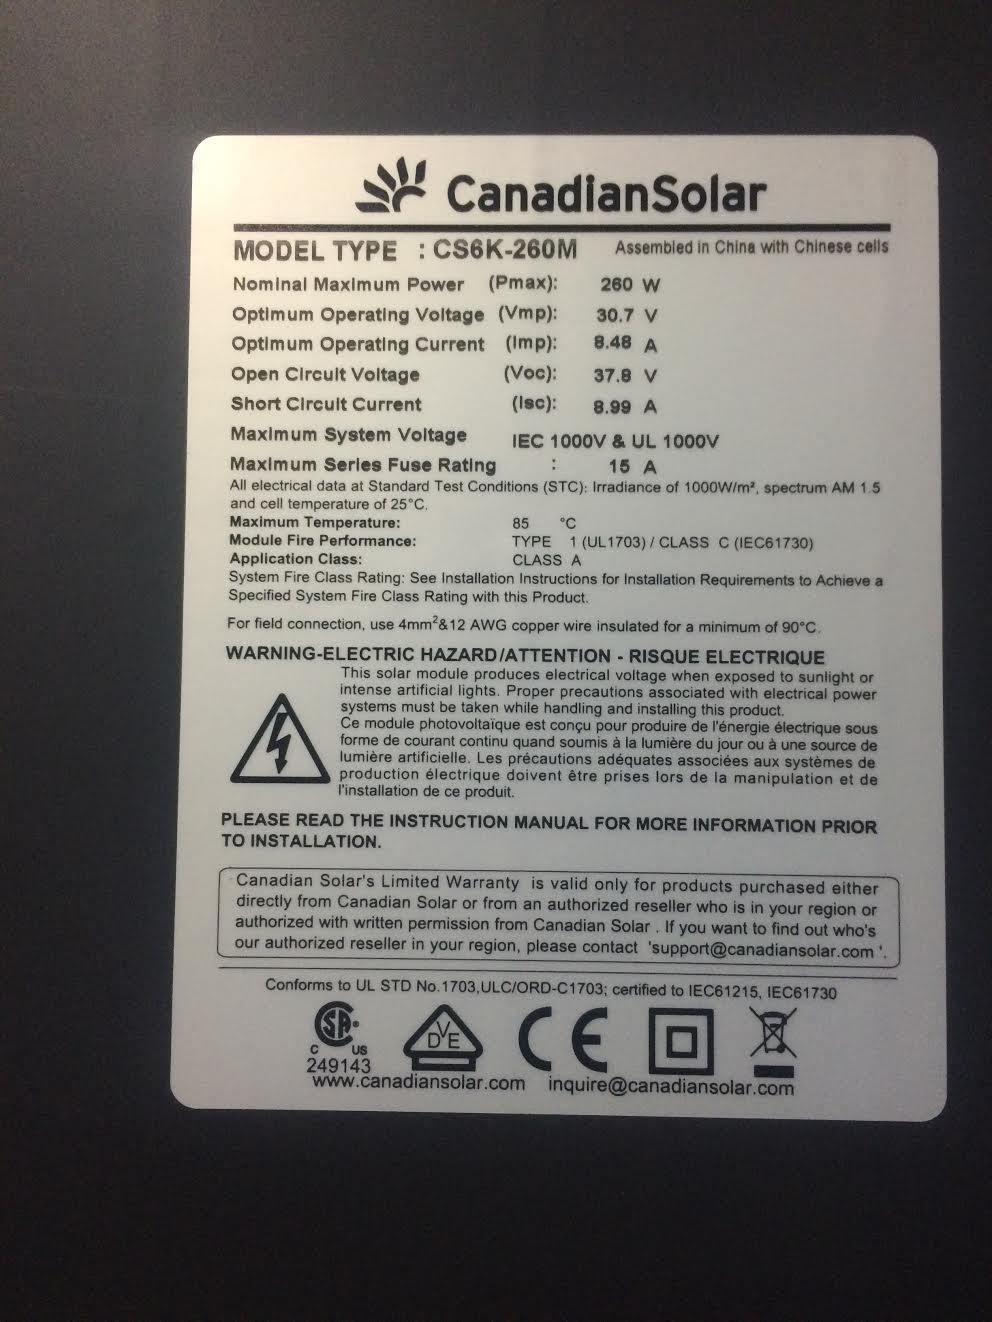 No products are available in your region change your region to find - Amazon Com Canadian Solar 260 Watt Black On Black Monocrystalline Patio Lawn Garden